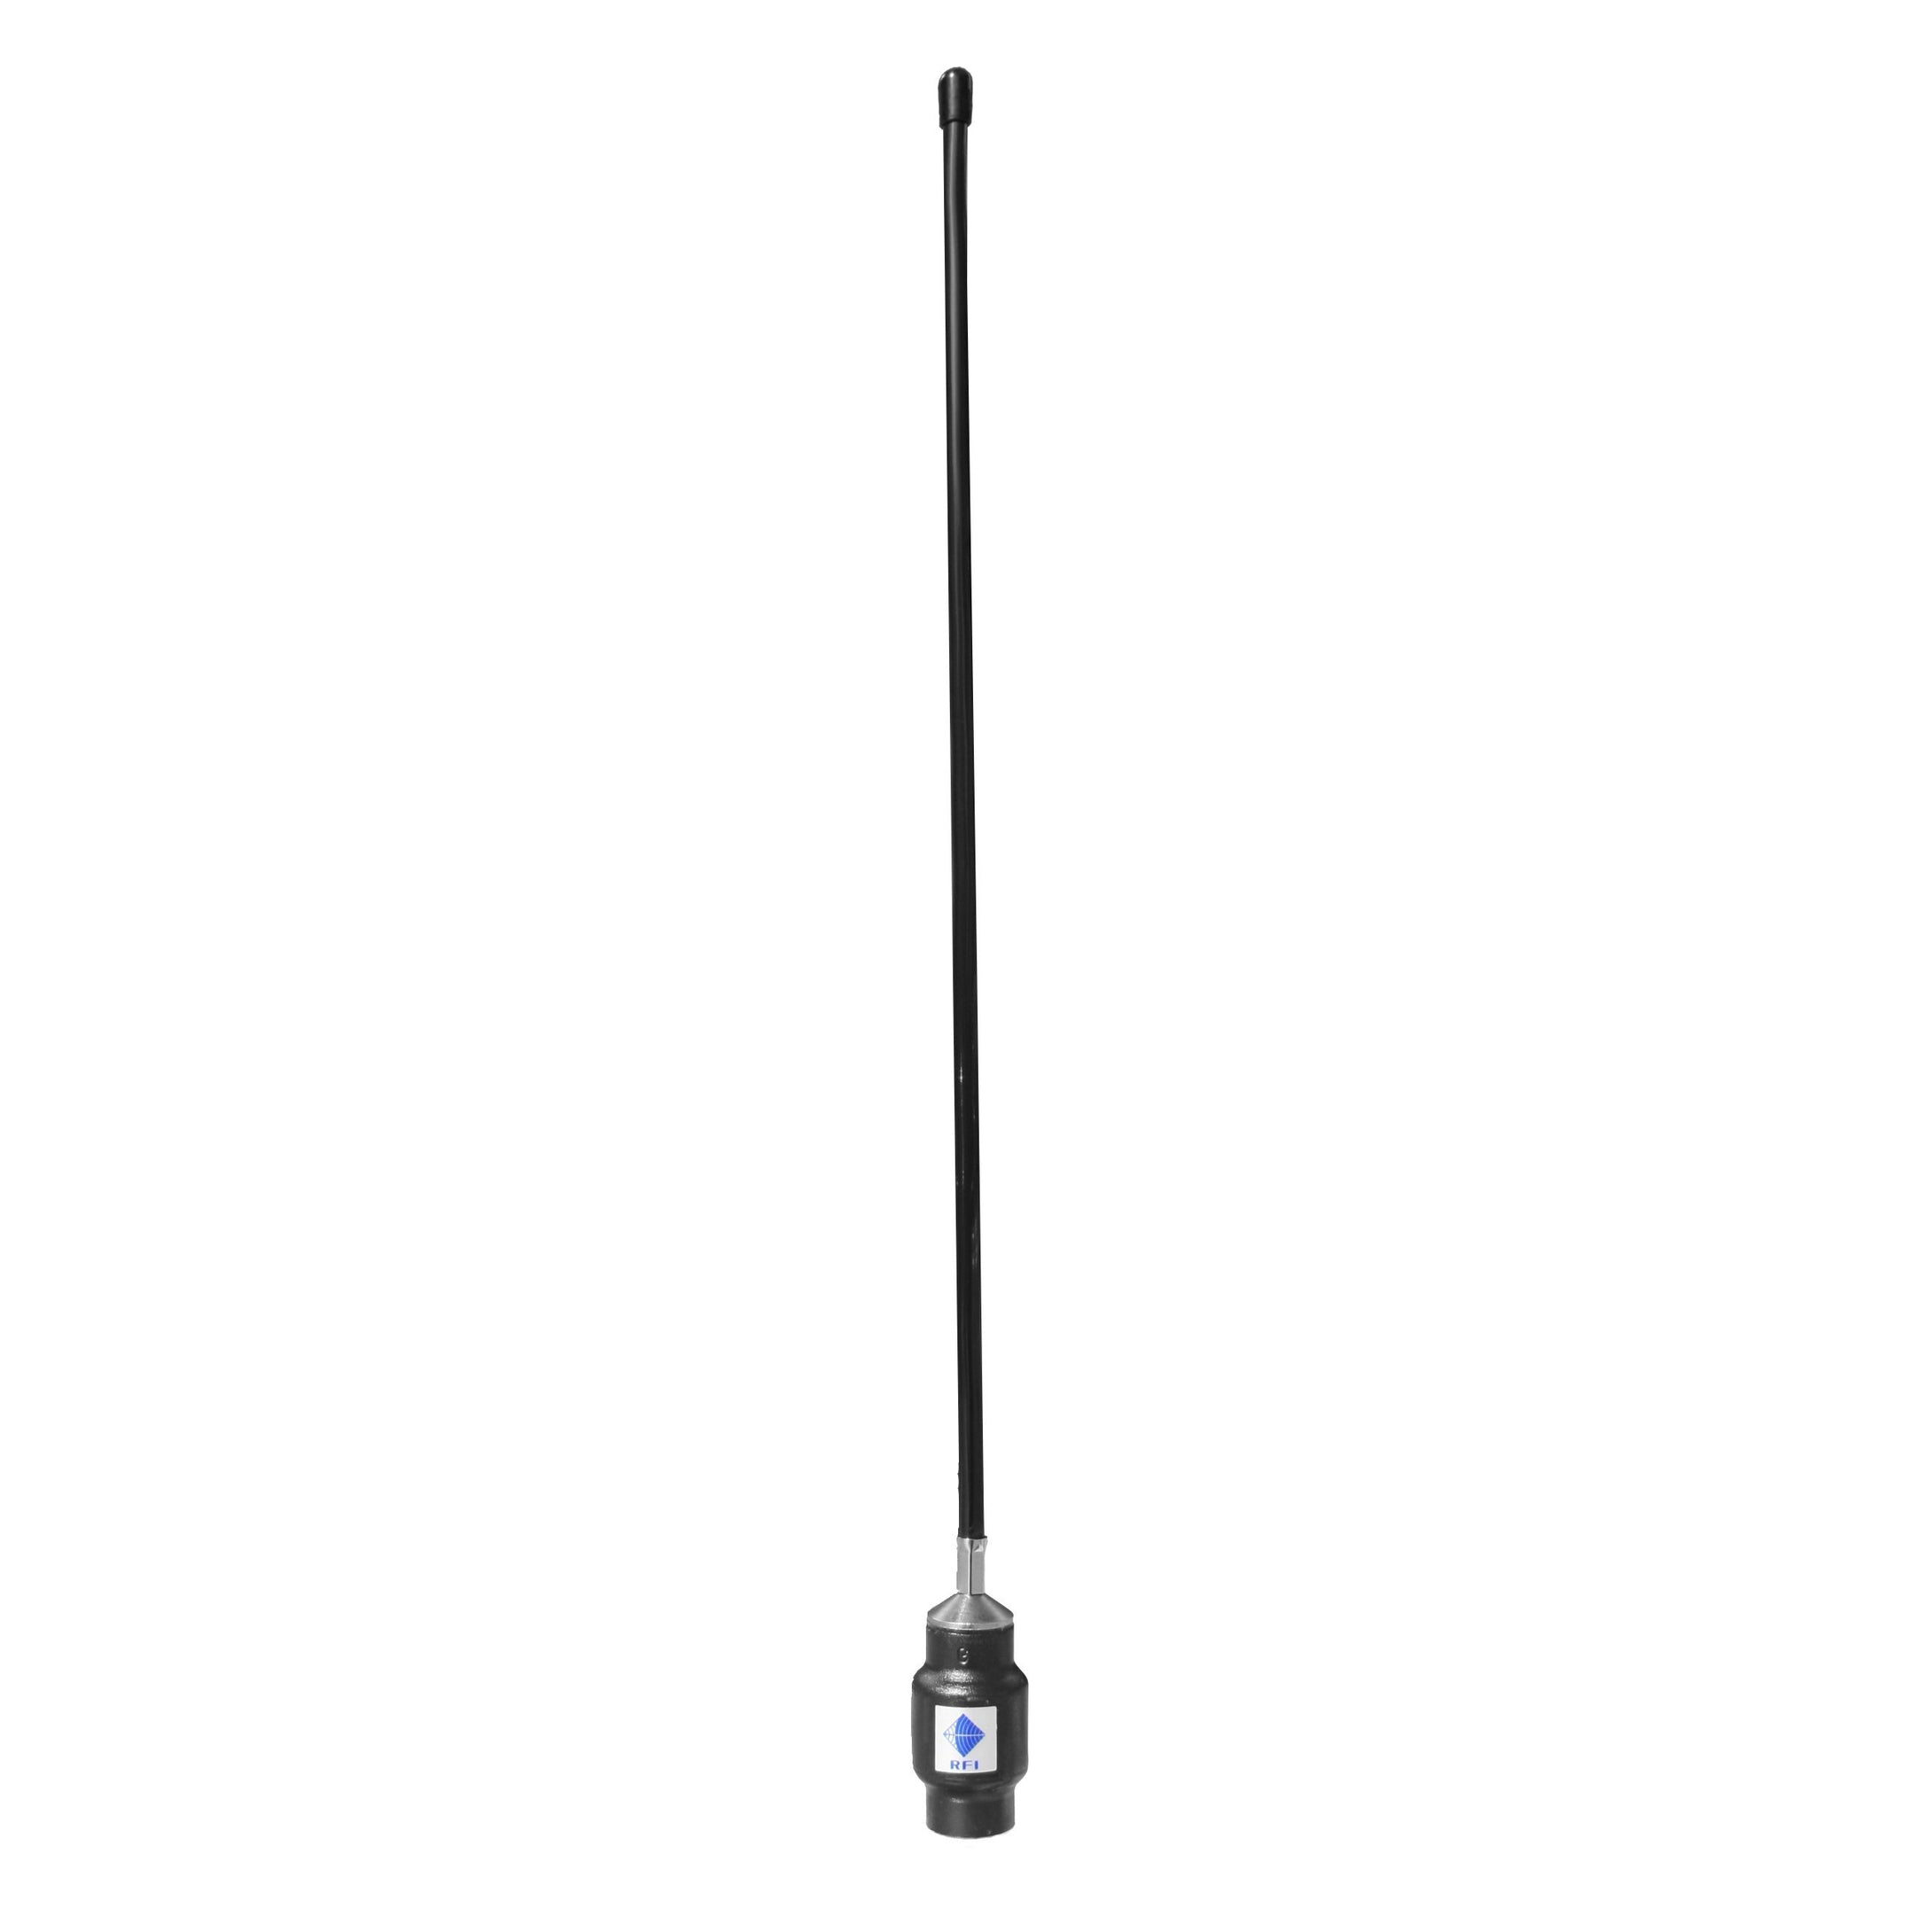 RFI CD51-65-53 UHF Ground Independent Mopole 380 - 440 MHz - 5Mtr Cable - Point to Point Distributions